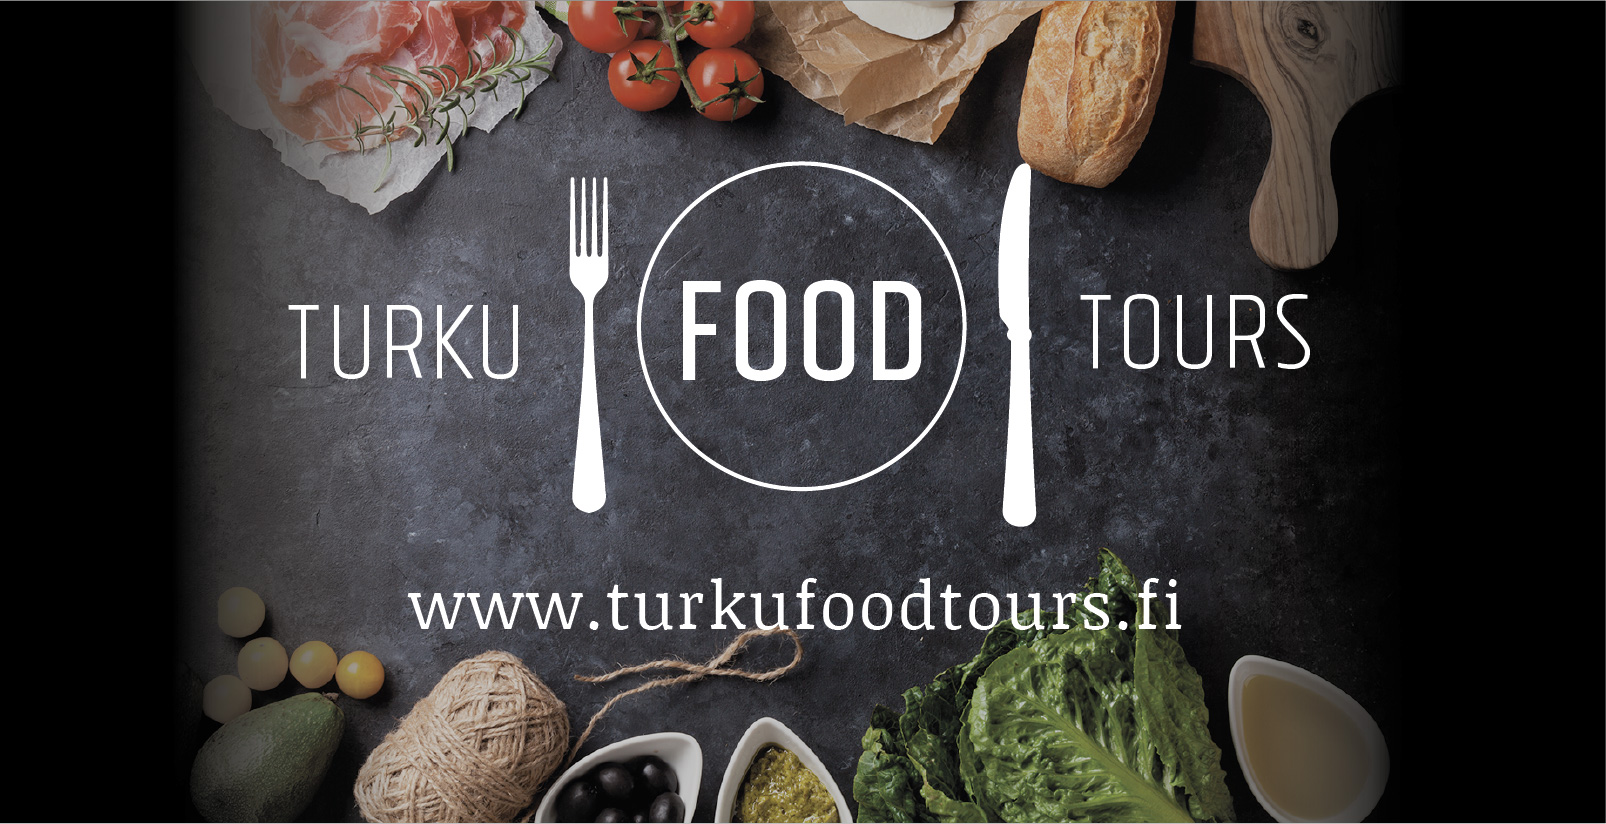 Turku FOOD Tours